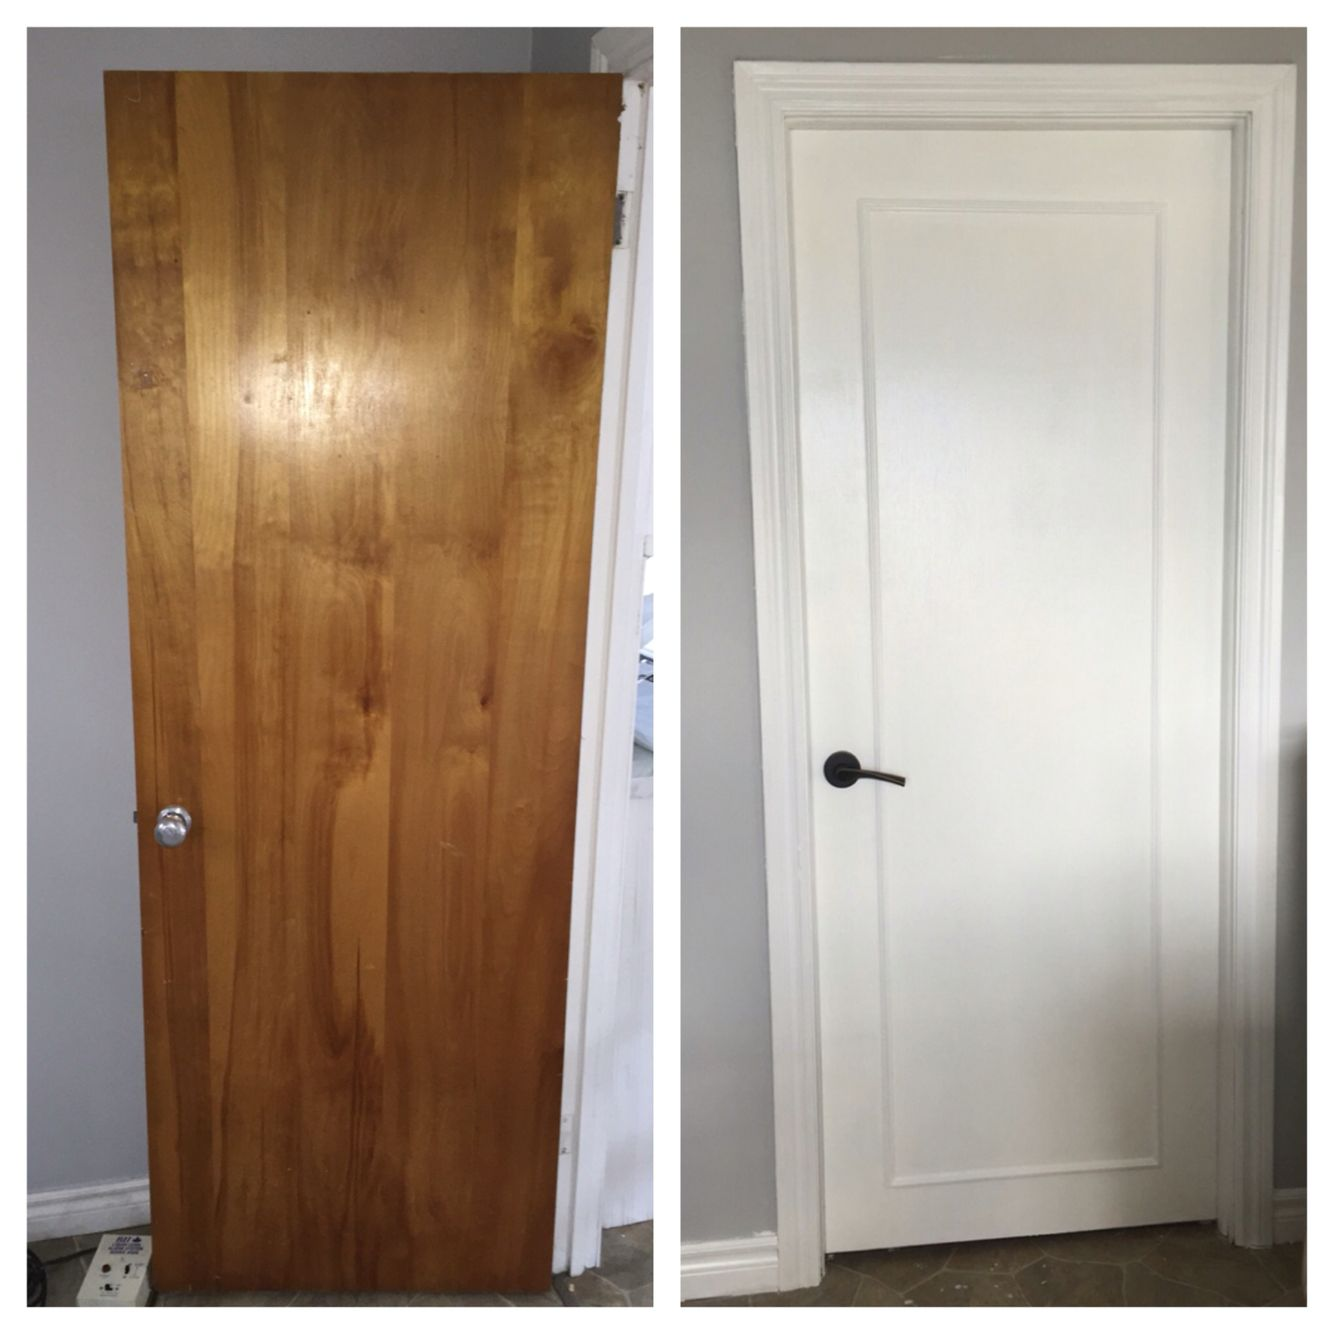 Updated old wood doors to a modern look with wood trim for Wood doors painted white